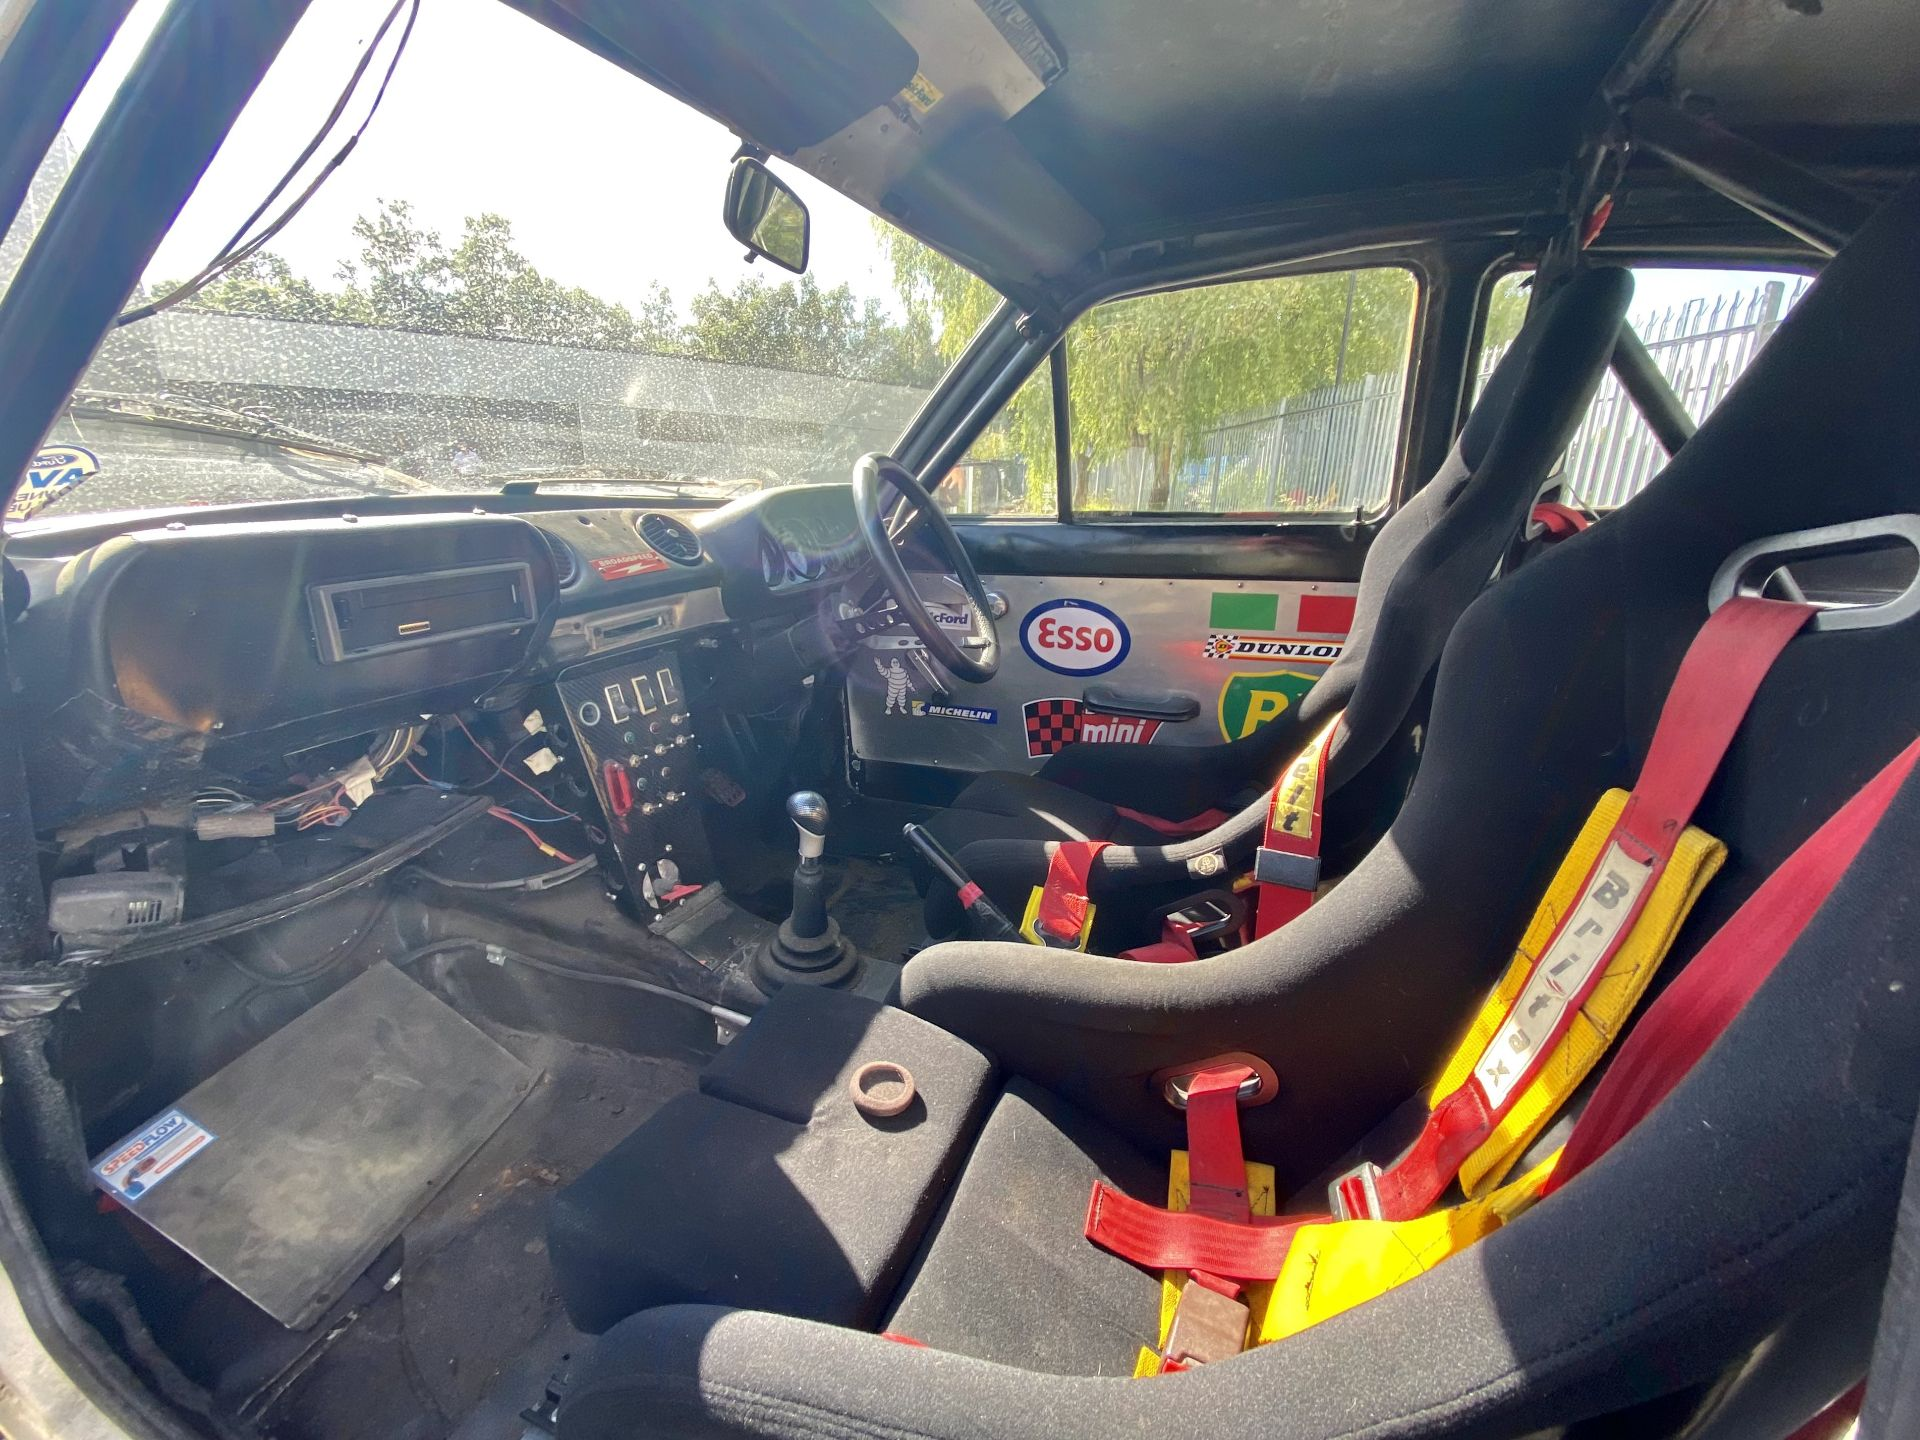 Ford Escort Mexico - Image 14 of 51